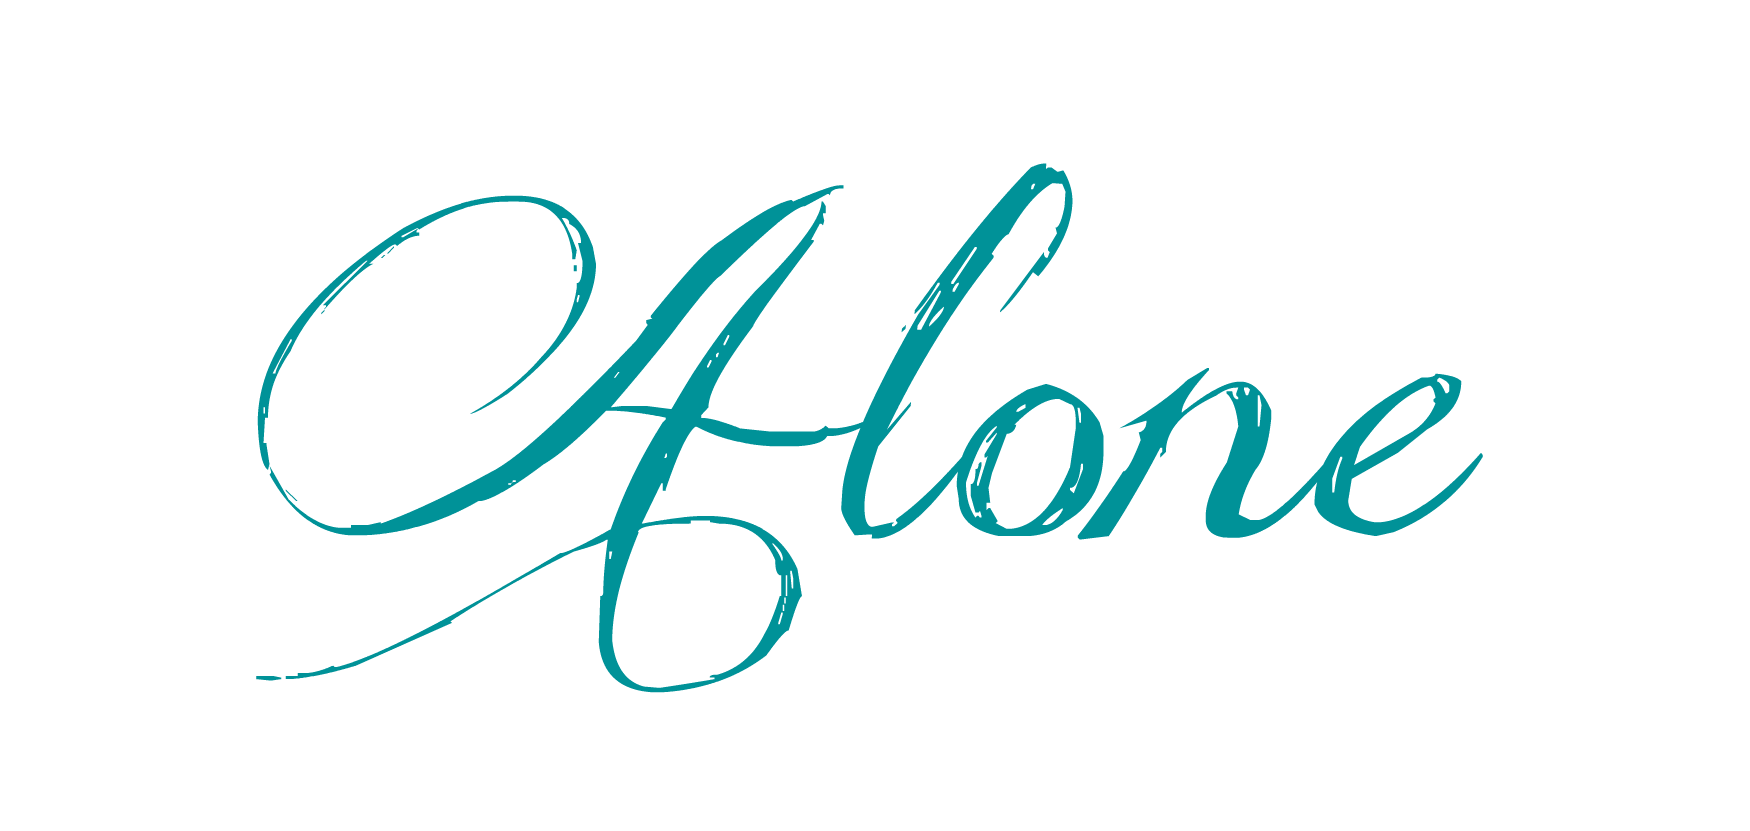 Alone Quotes PNG Transparent Images.